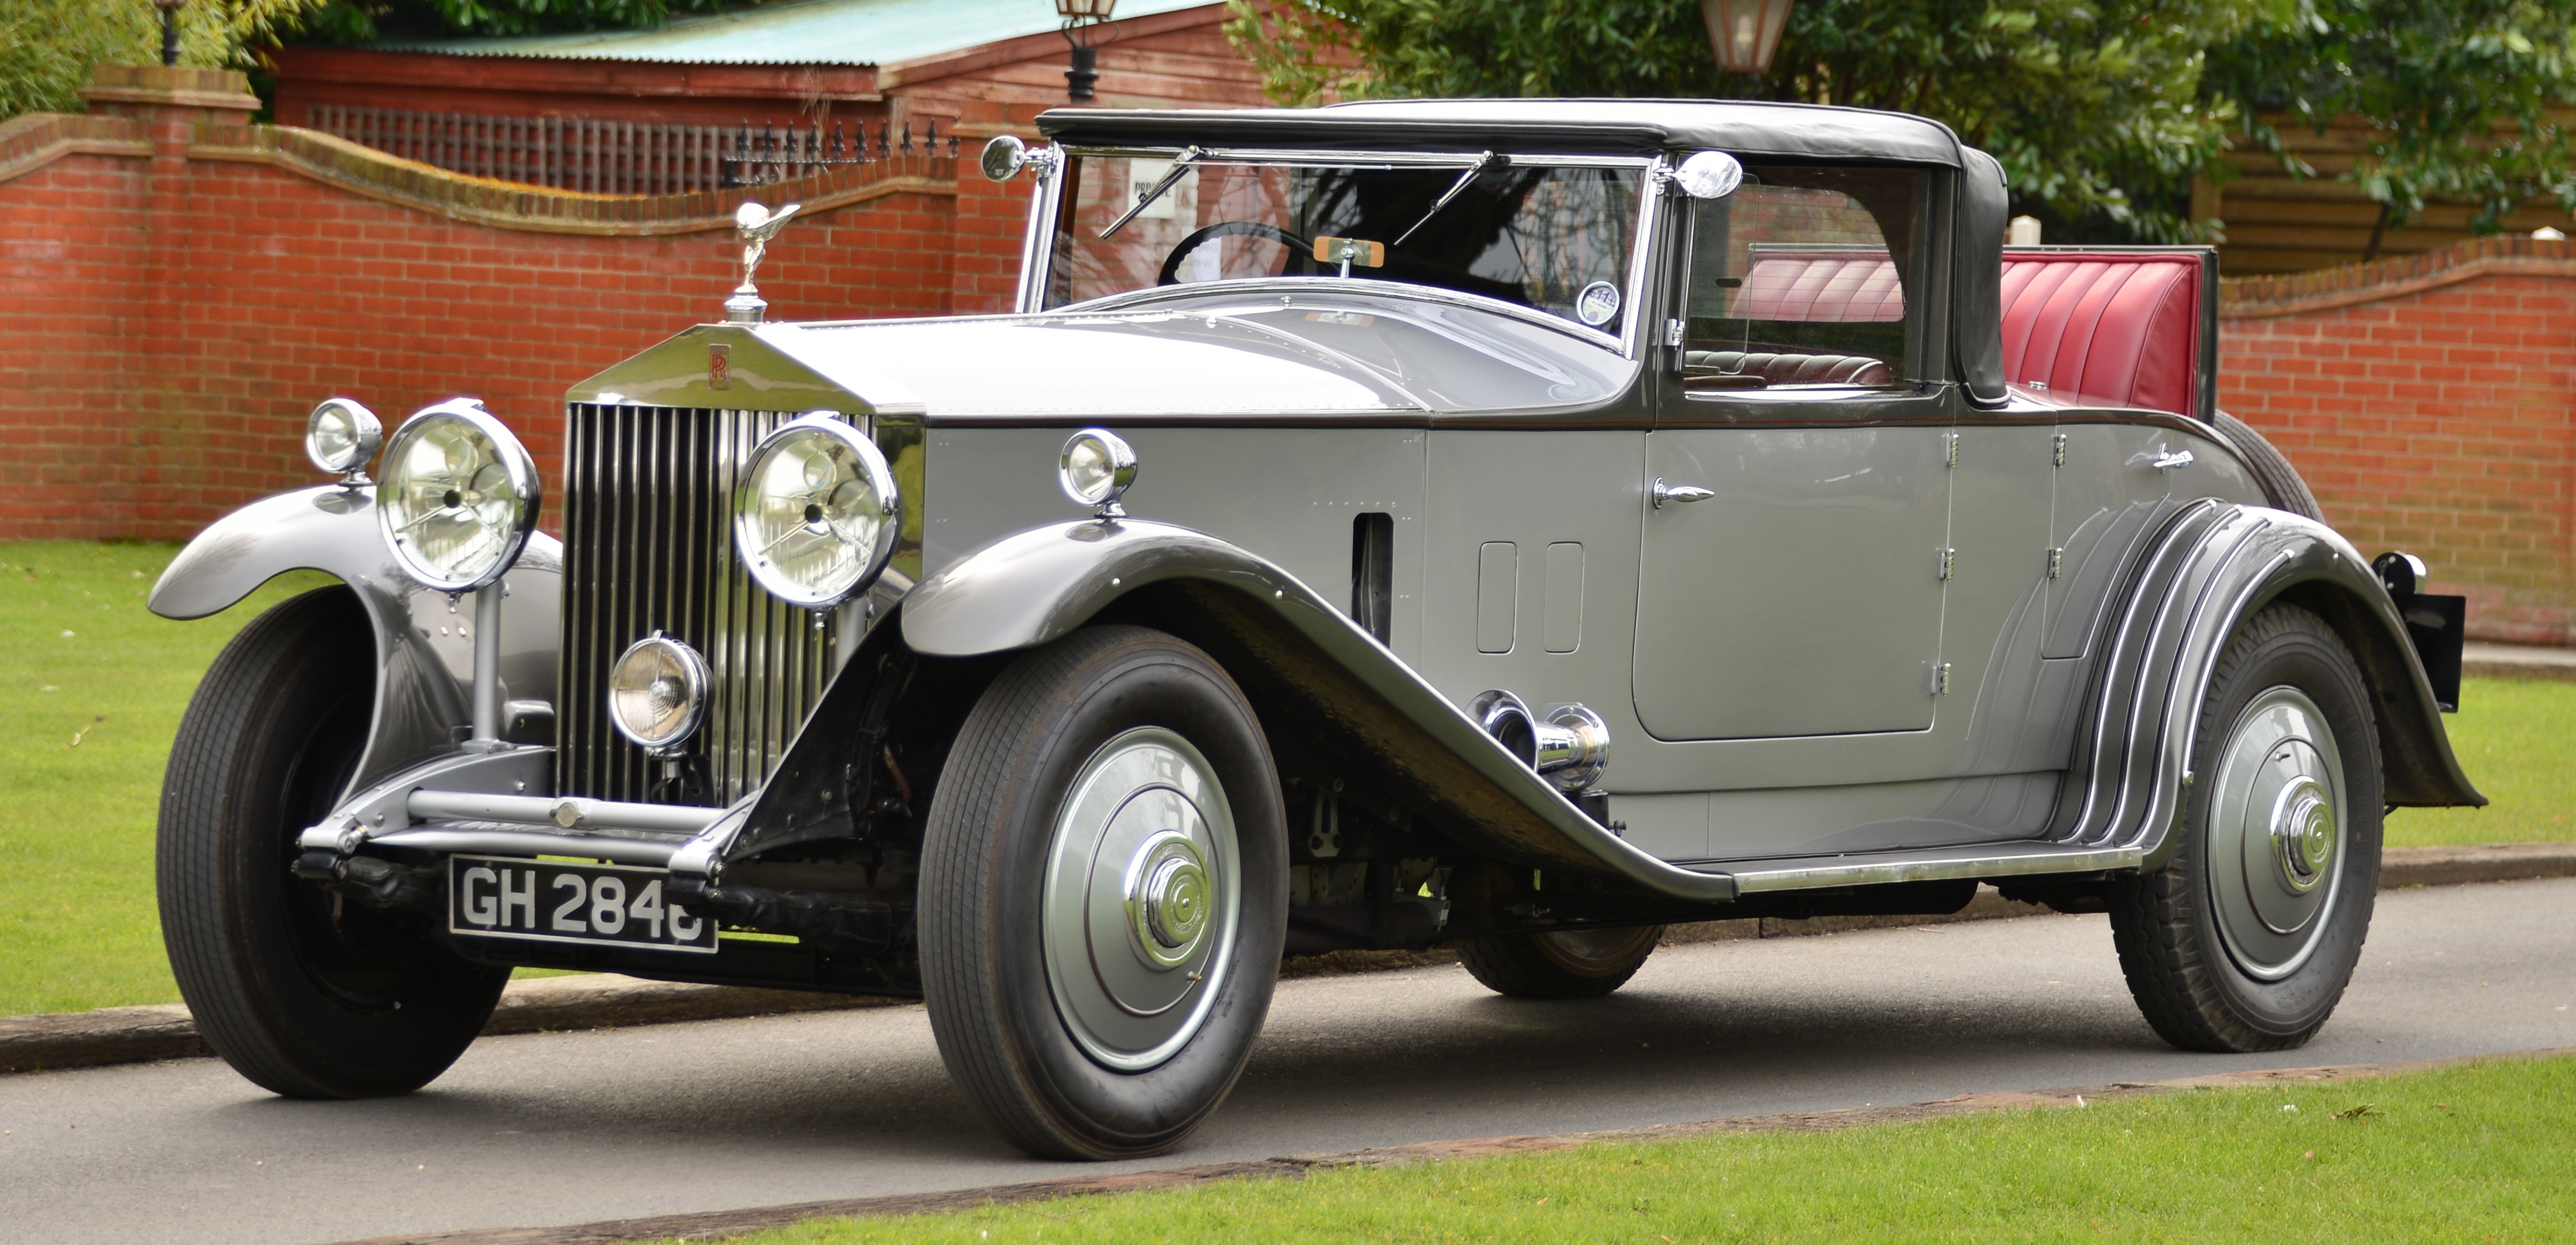 1930 rolls royce phantom ii 2 door convertible registration no 37gy chassis no gh2846 thi. Black Bedroom Furniture Sets. Home Design Ideas